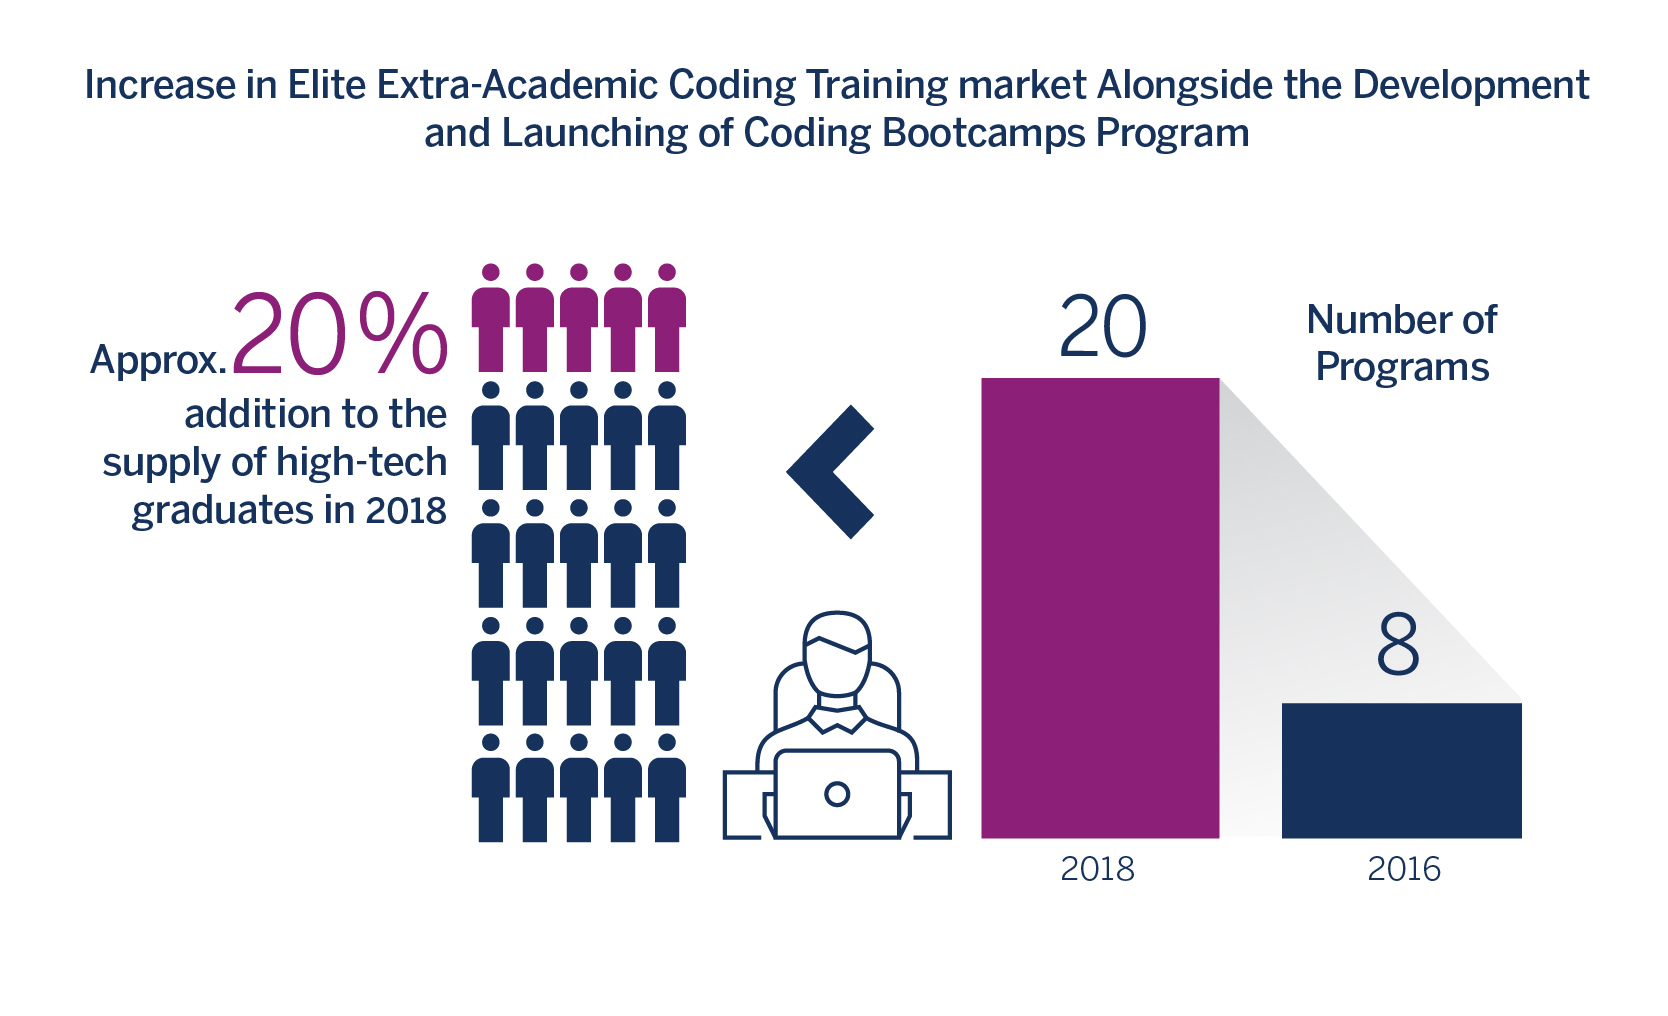 increase in elite extra-Academic coding training market Alongside the Development and Launching of coding Bootcamps Program